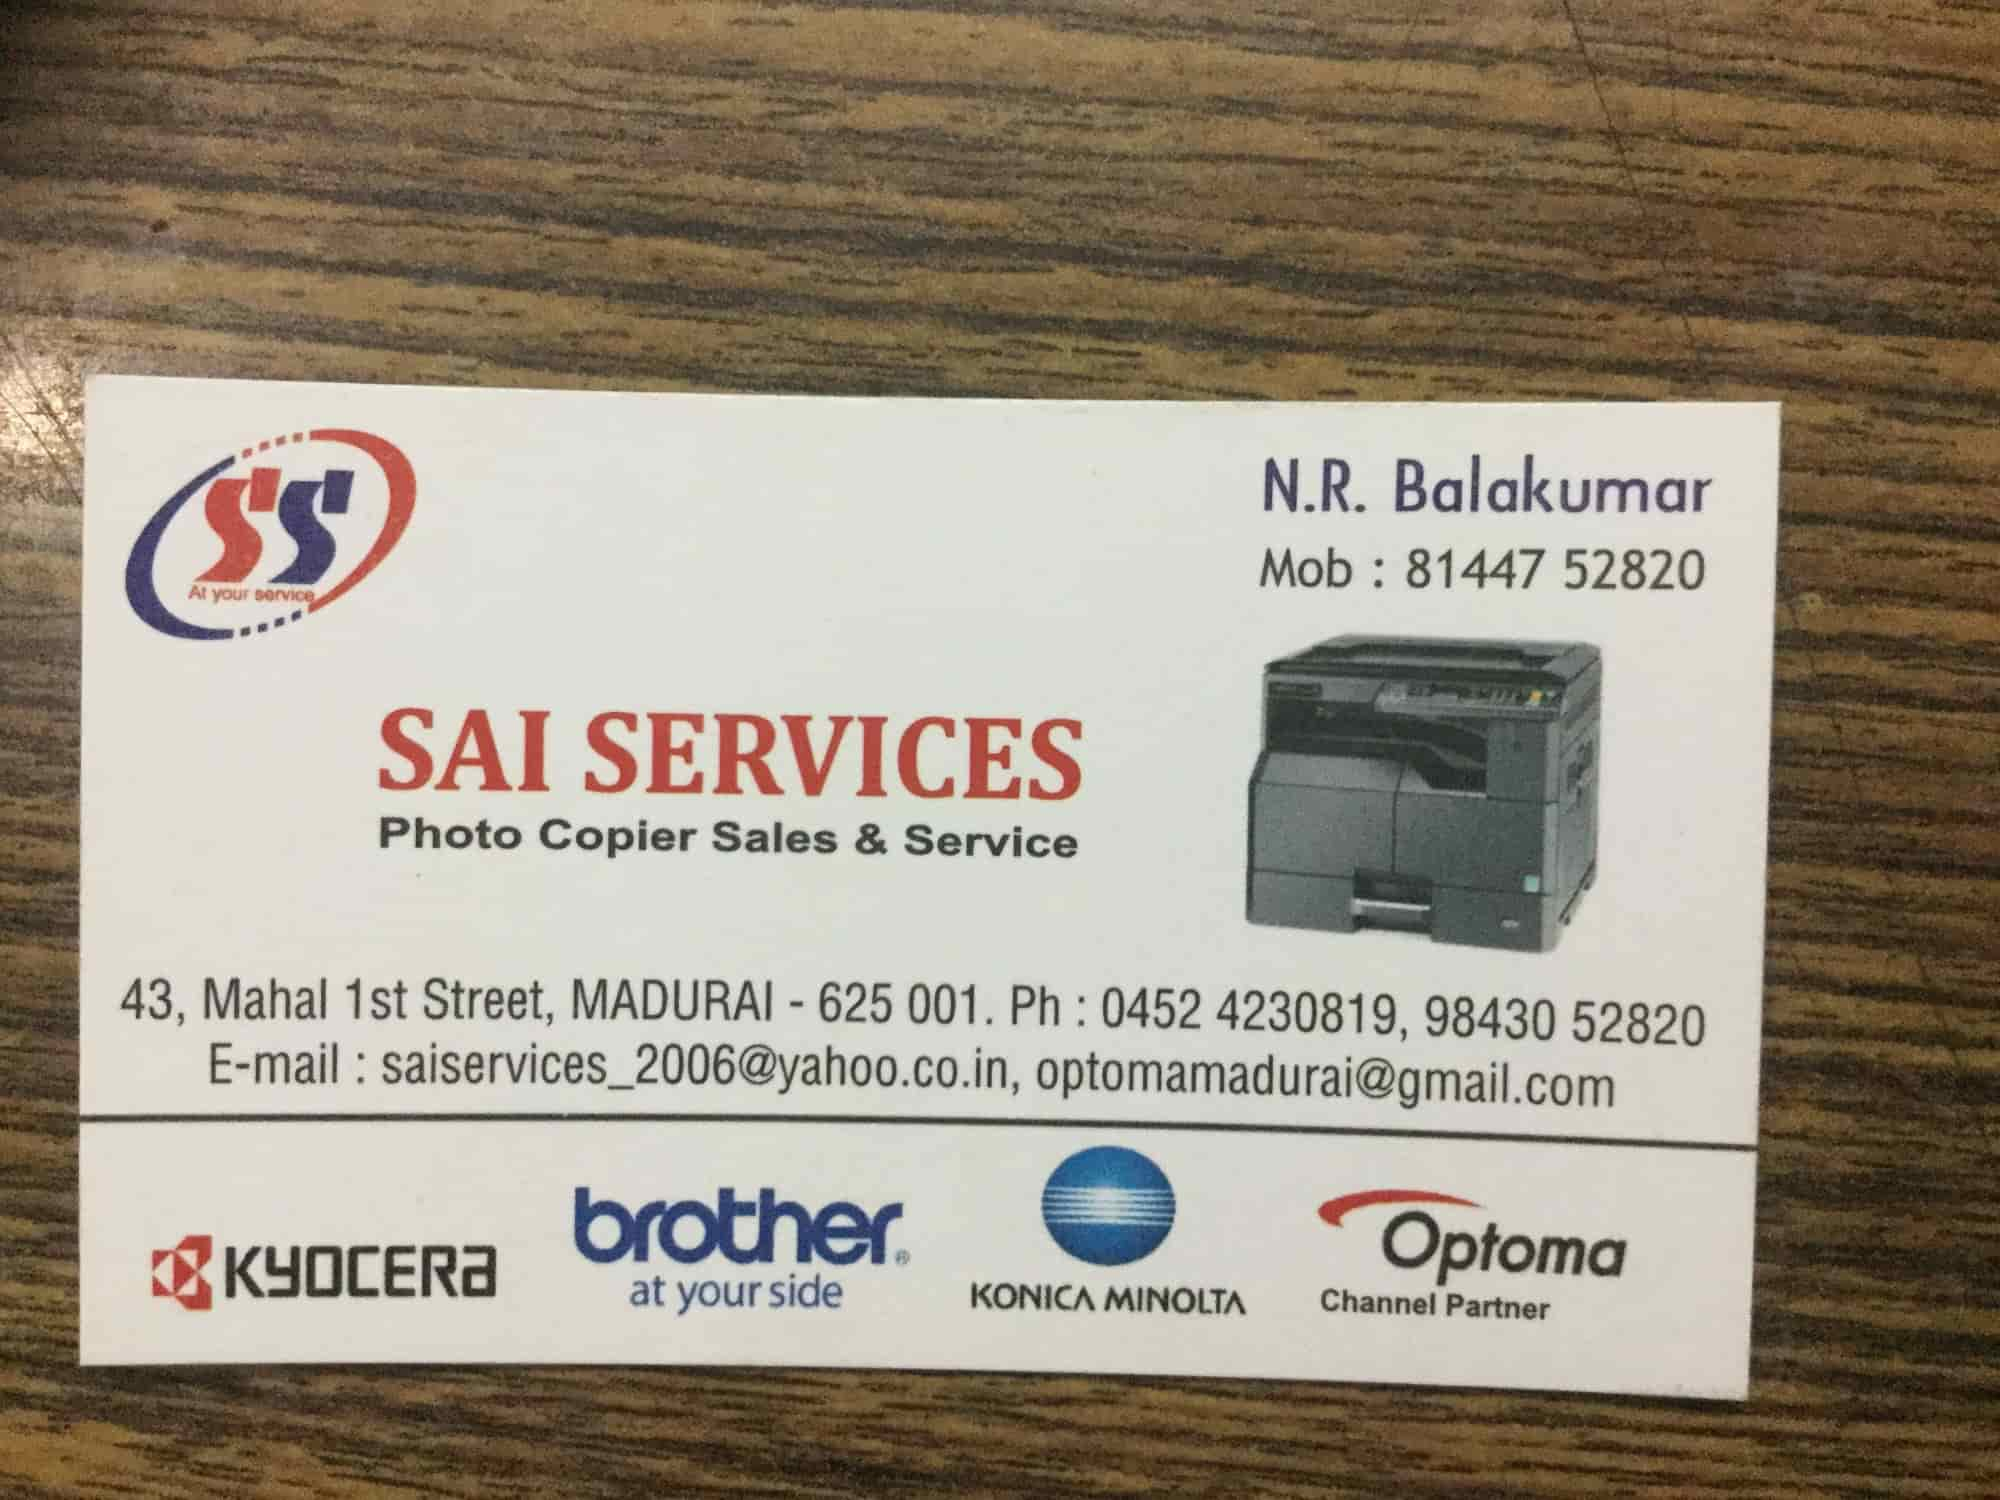 Sai Services, South Masi Street - Photocopier Dealers-Kyocera in